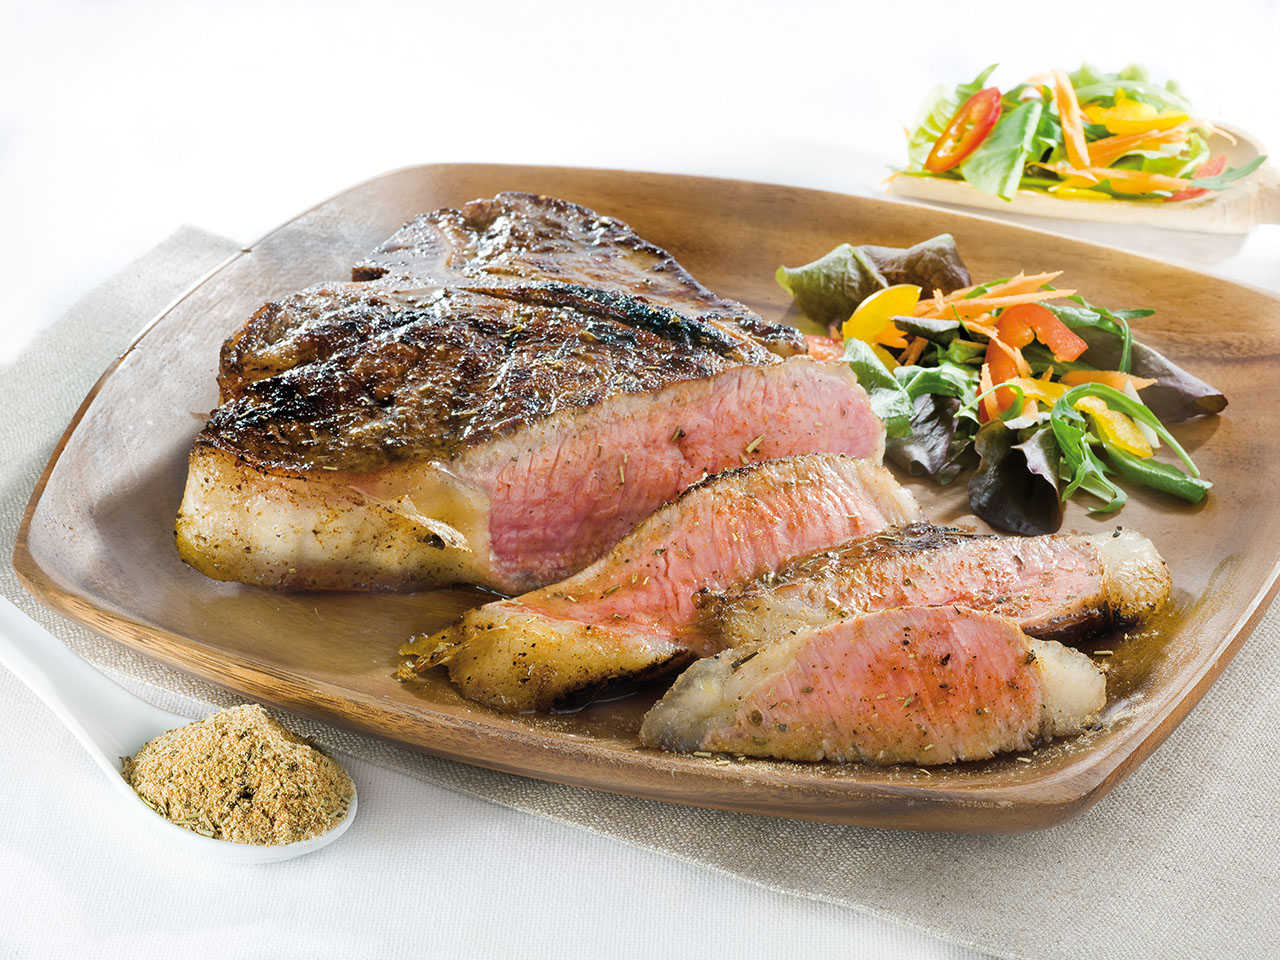 T-bone steak-cannamela